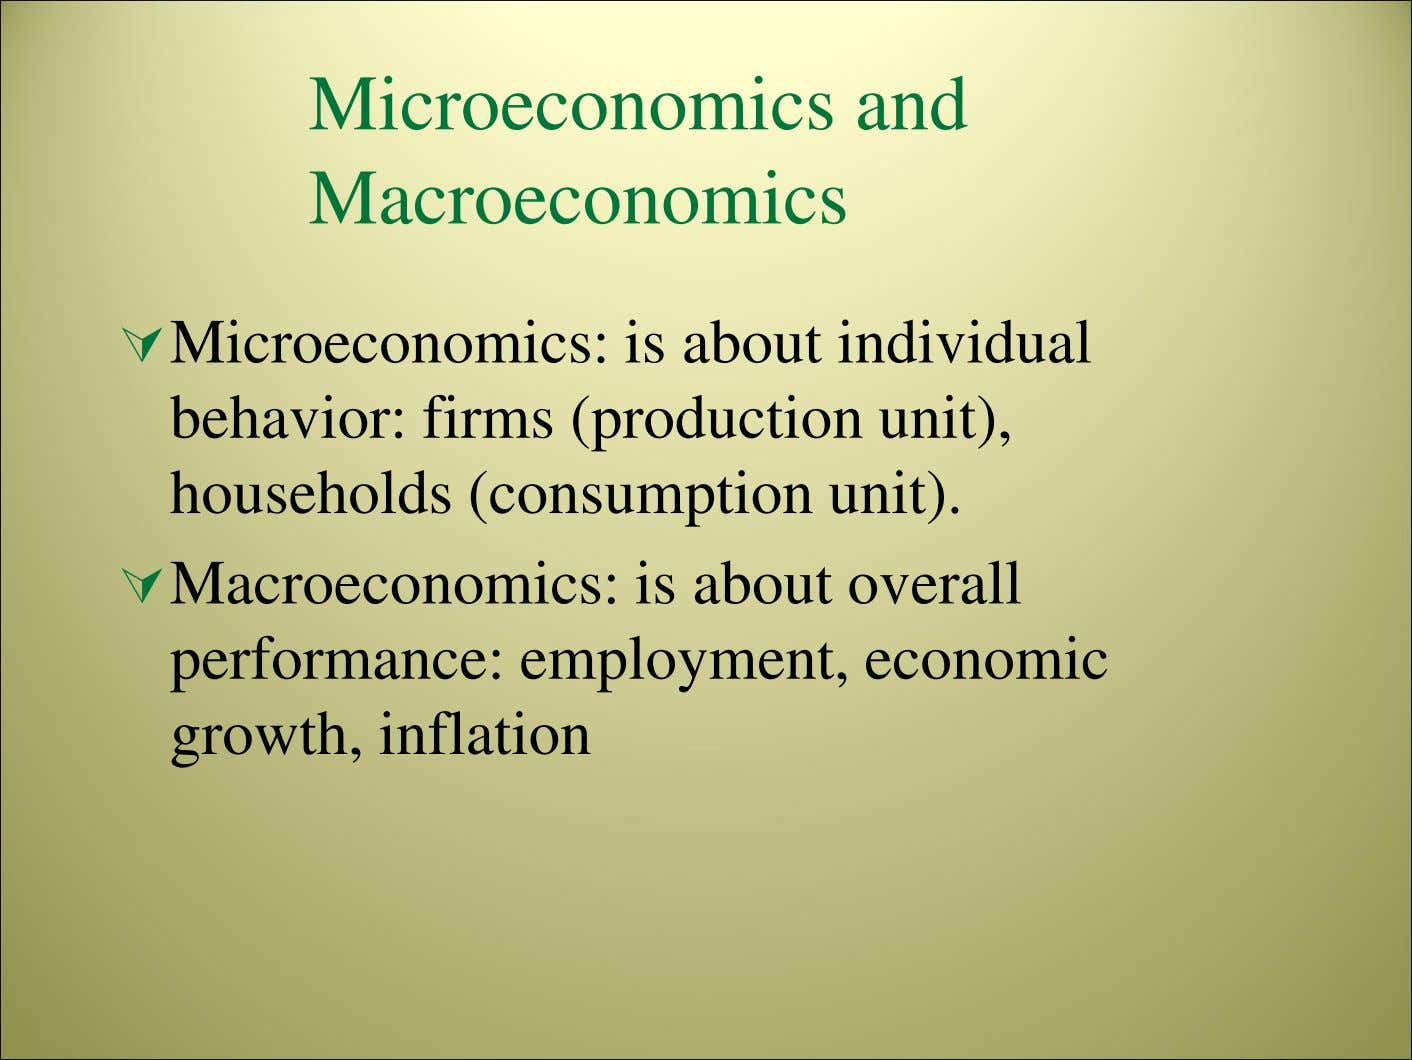 Microeconomics and Macroeconomics Microeconomics: is about individual behavior: firms (production unit), households